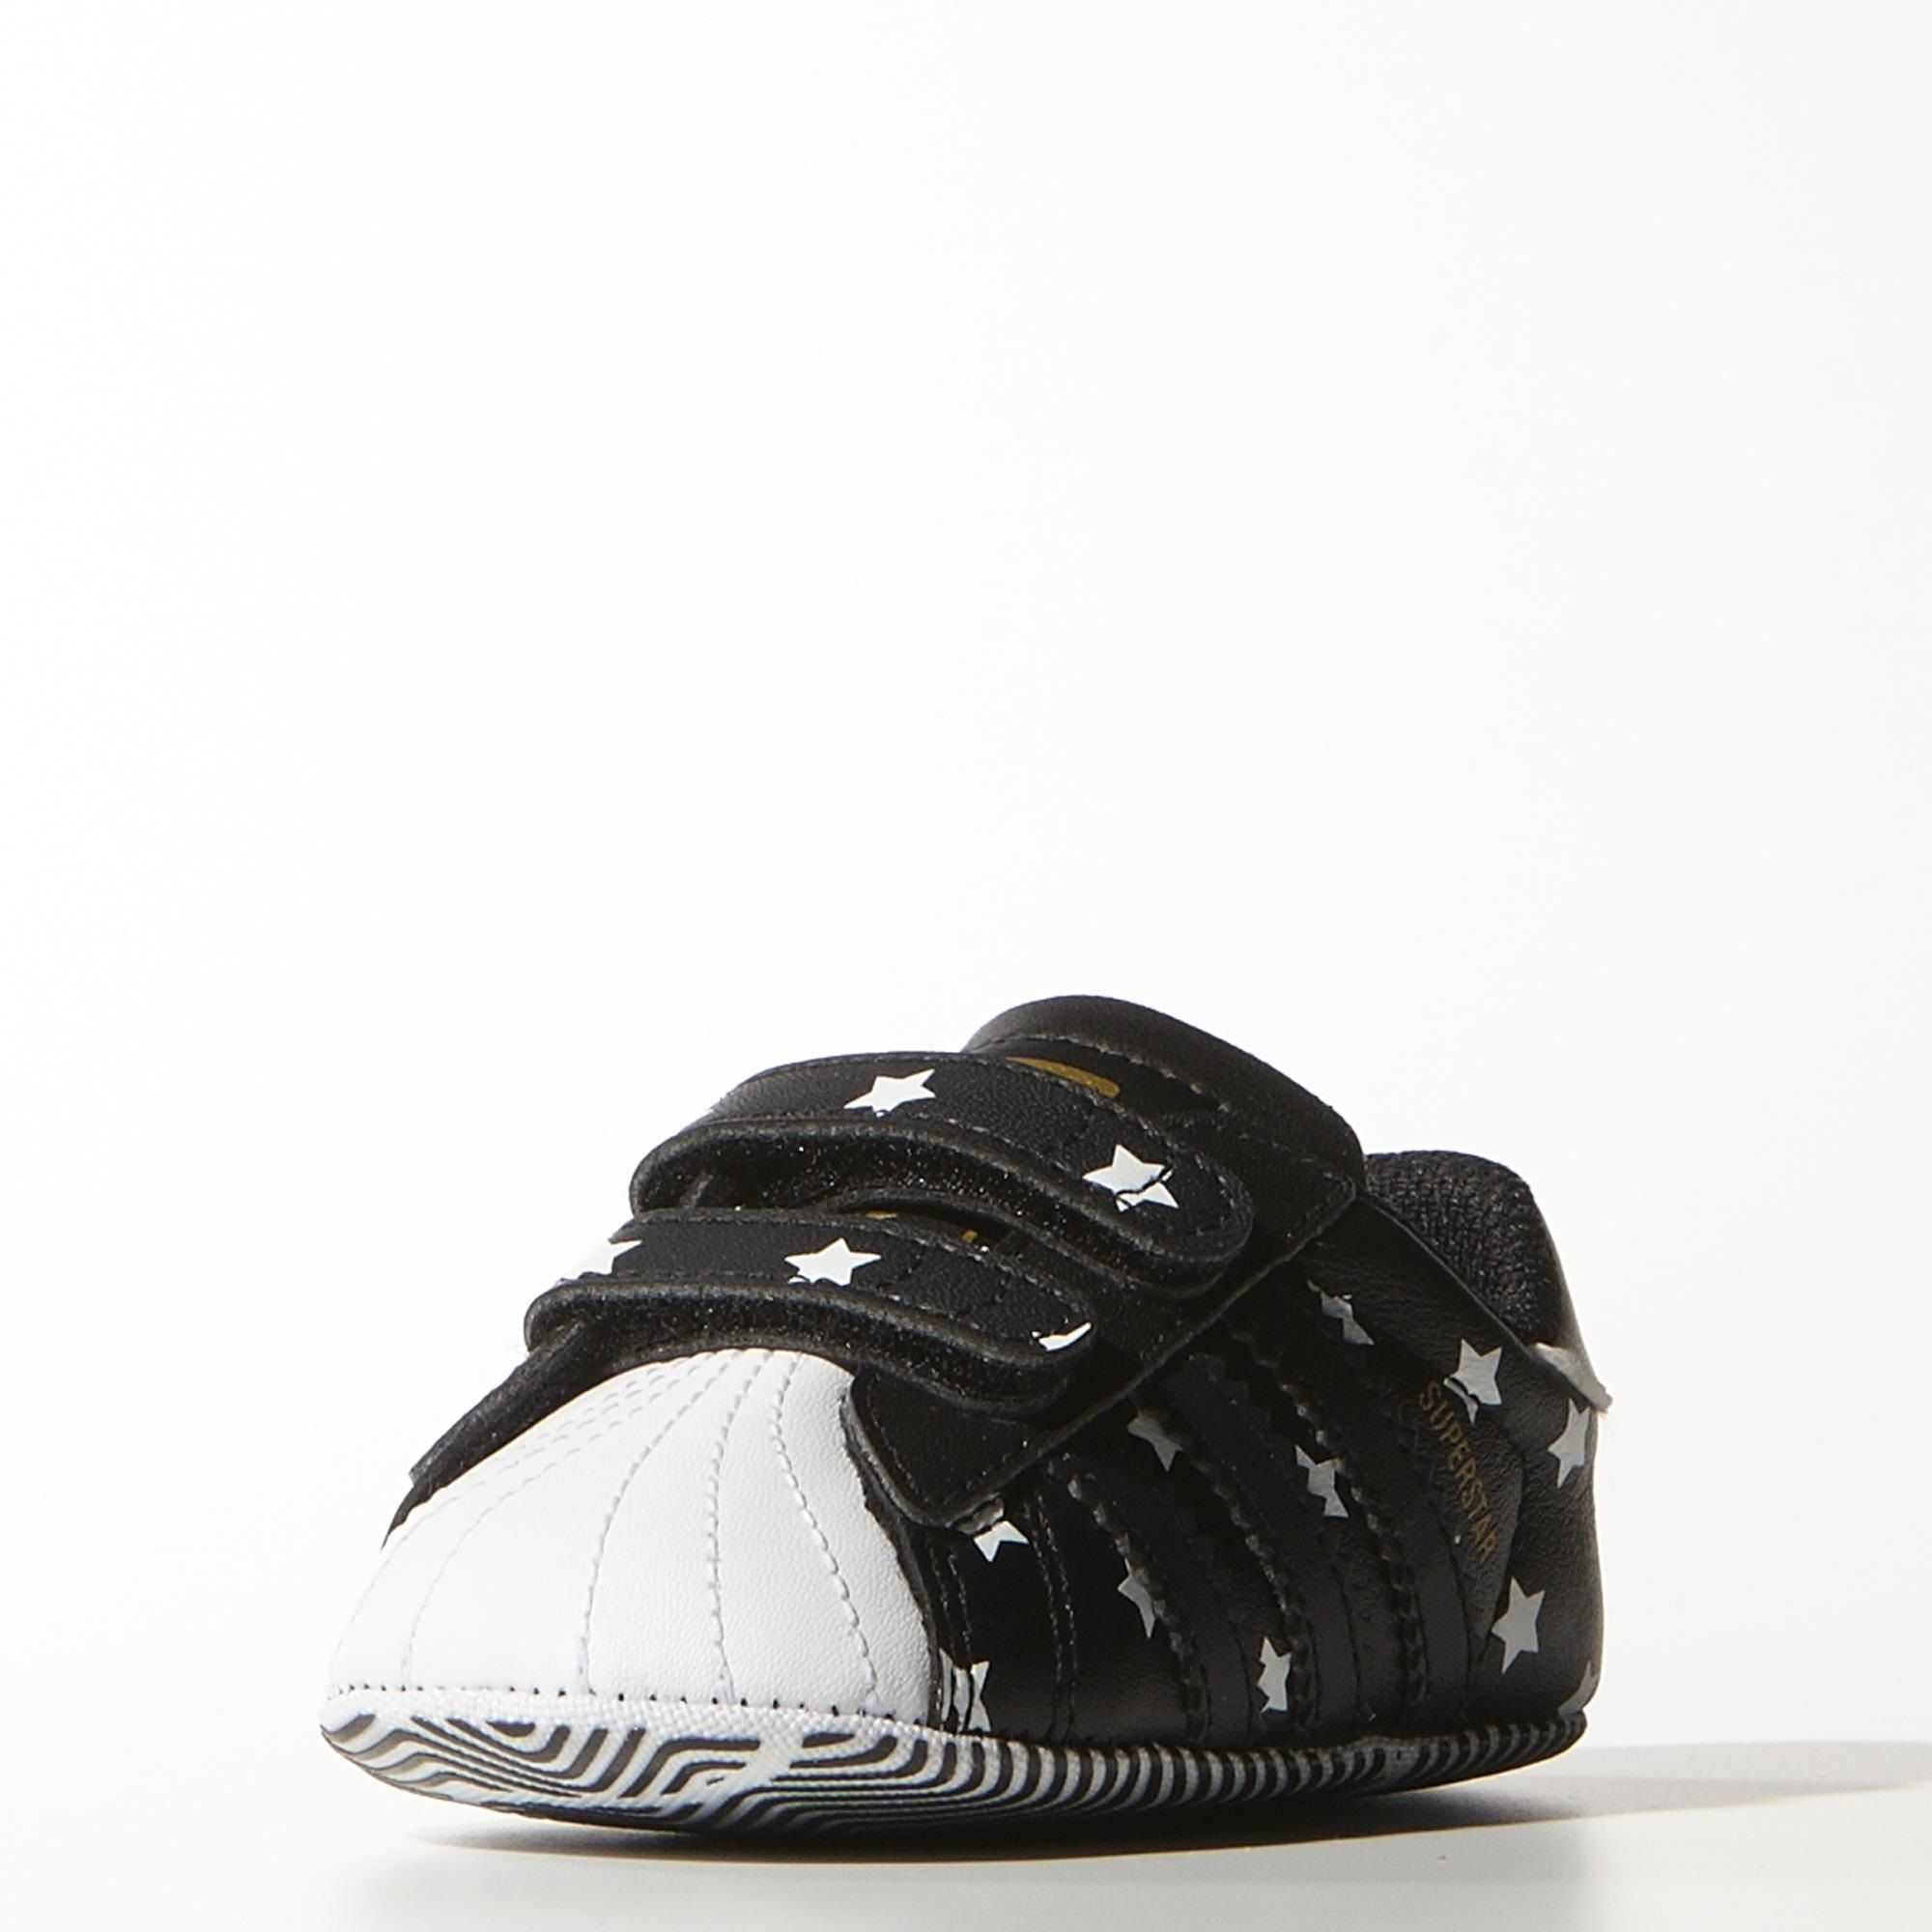 5240804d707e6 Adidas Originals Zapatillas Bebé Superstar Crib (negro blanco)